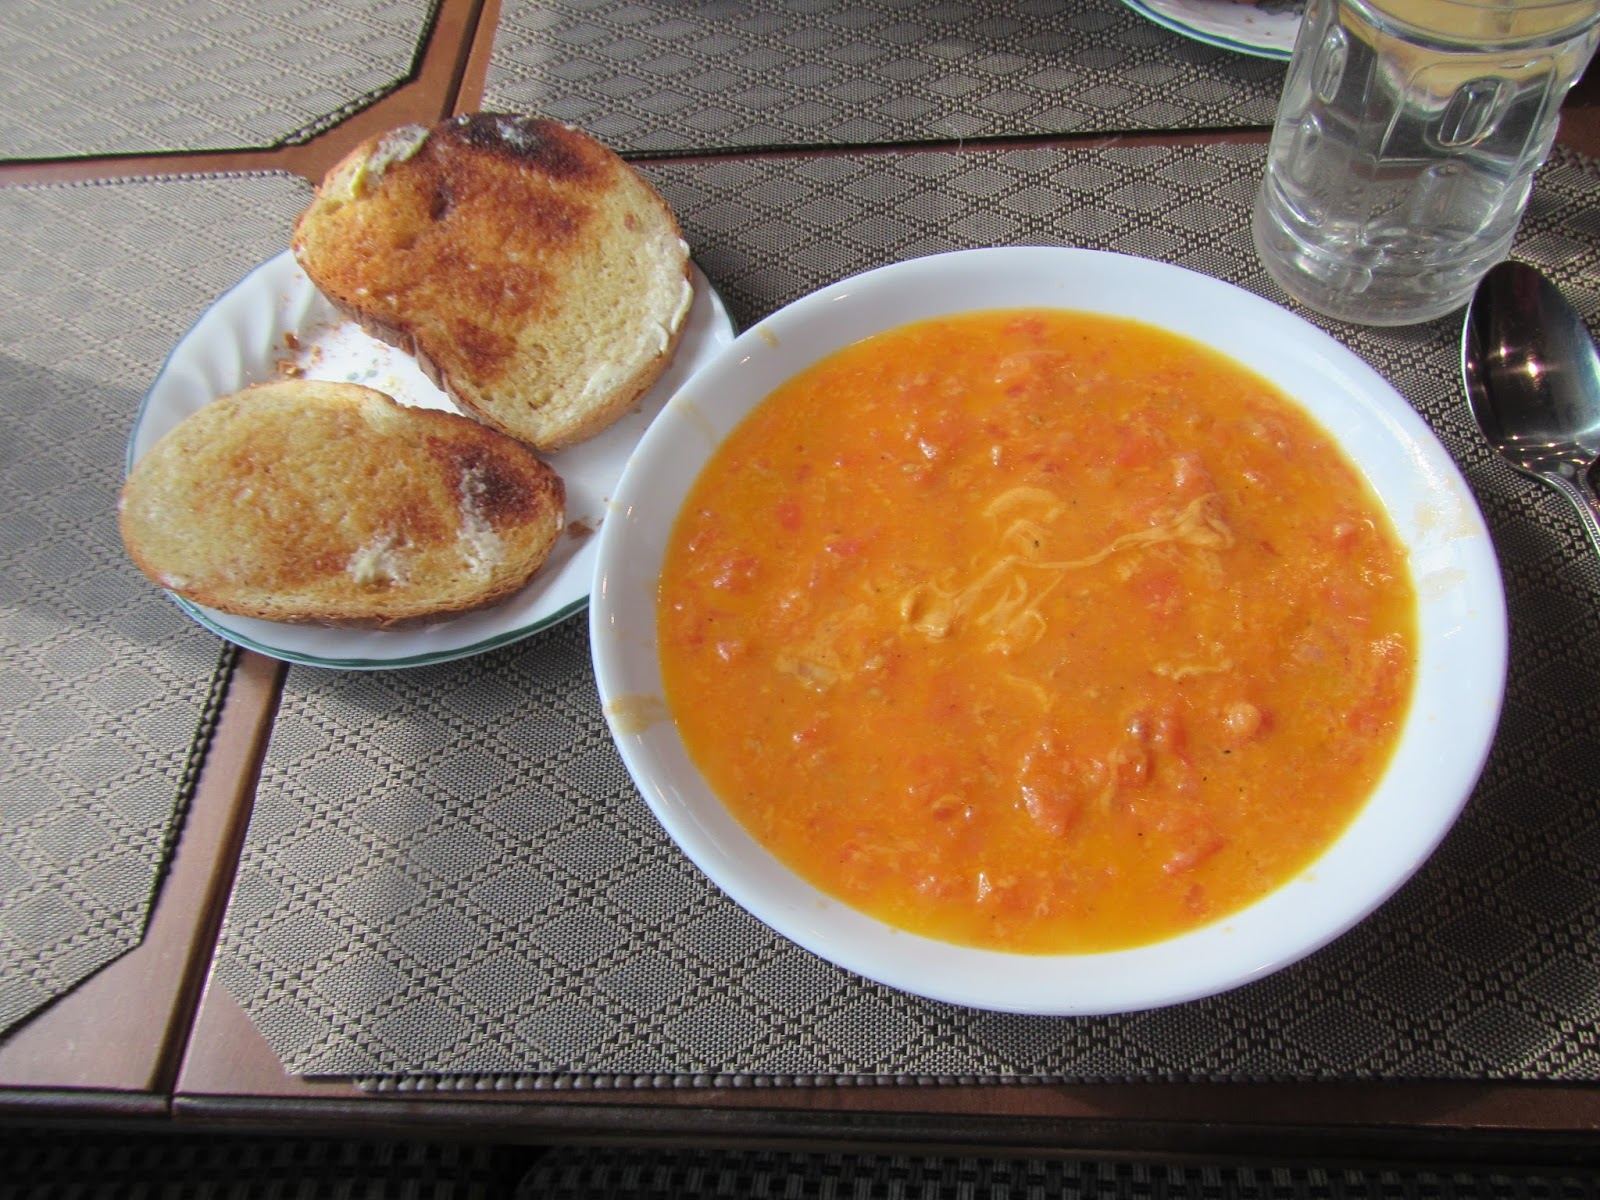 Homemade Tomato/Cheese and Bacon soup with a side of toast.